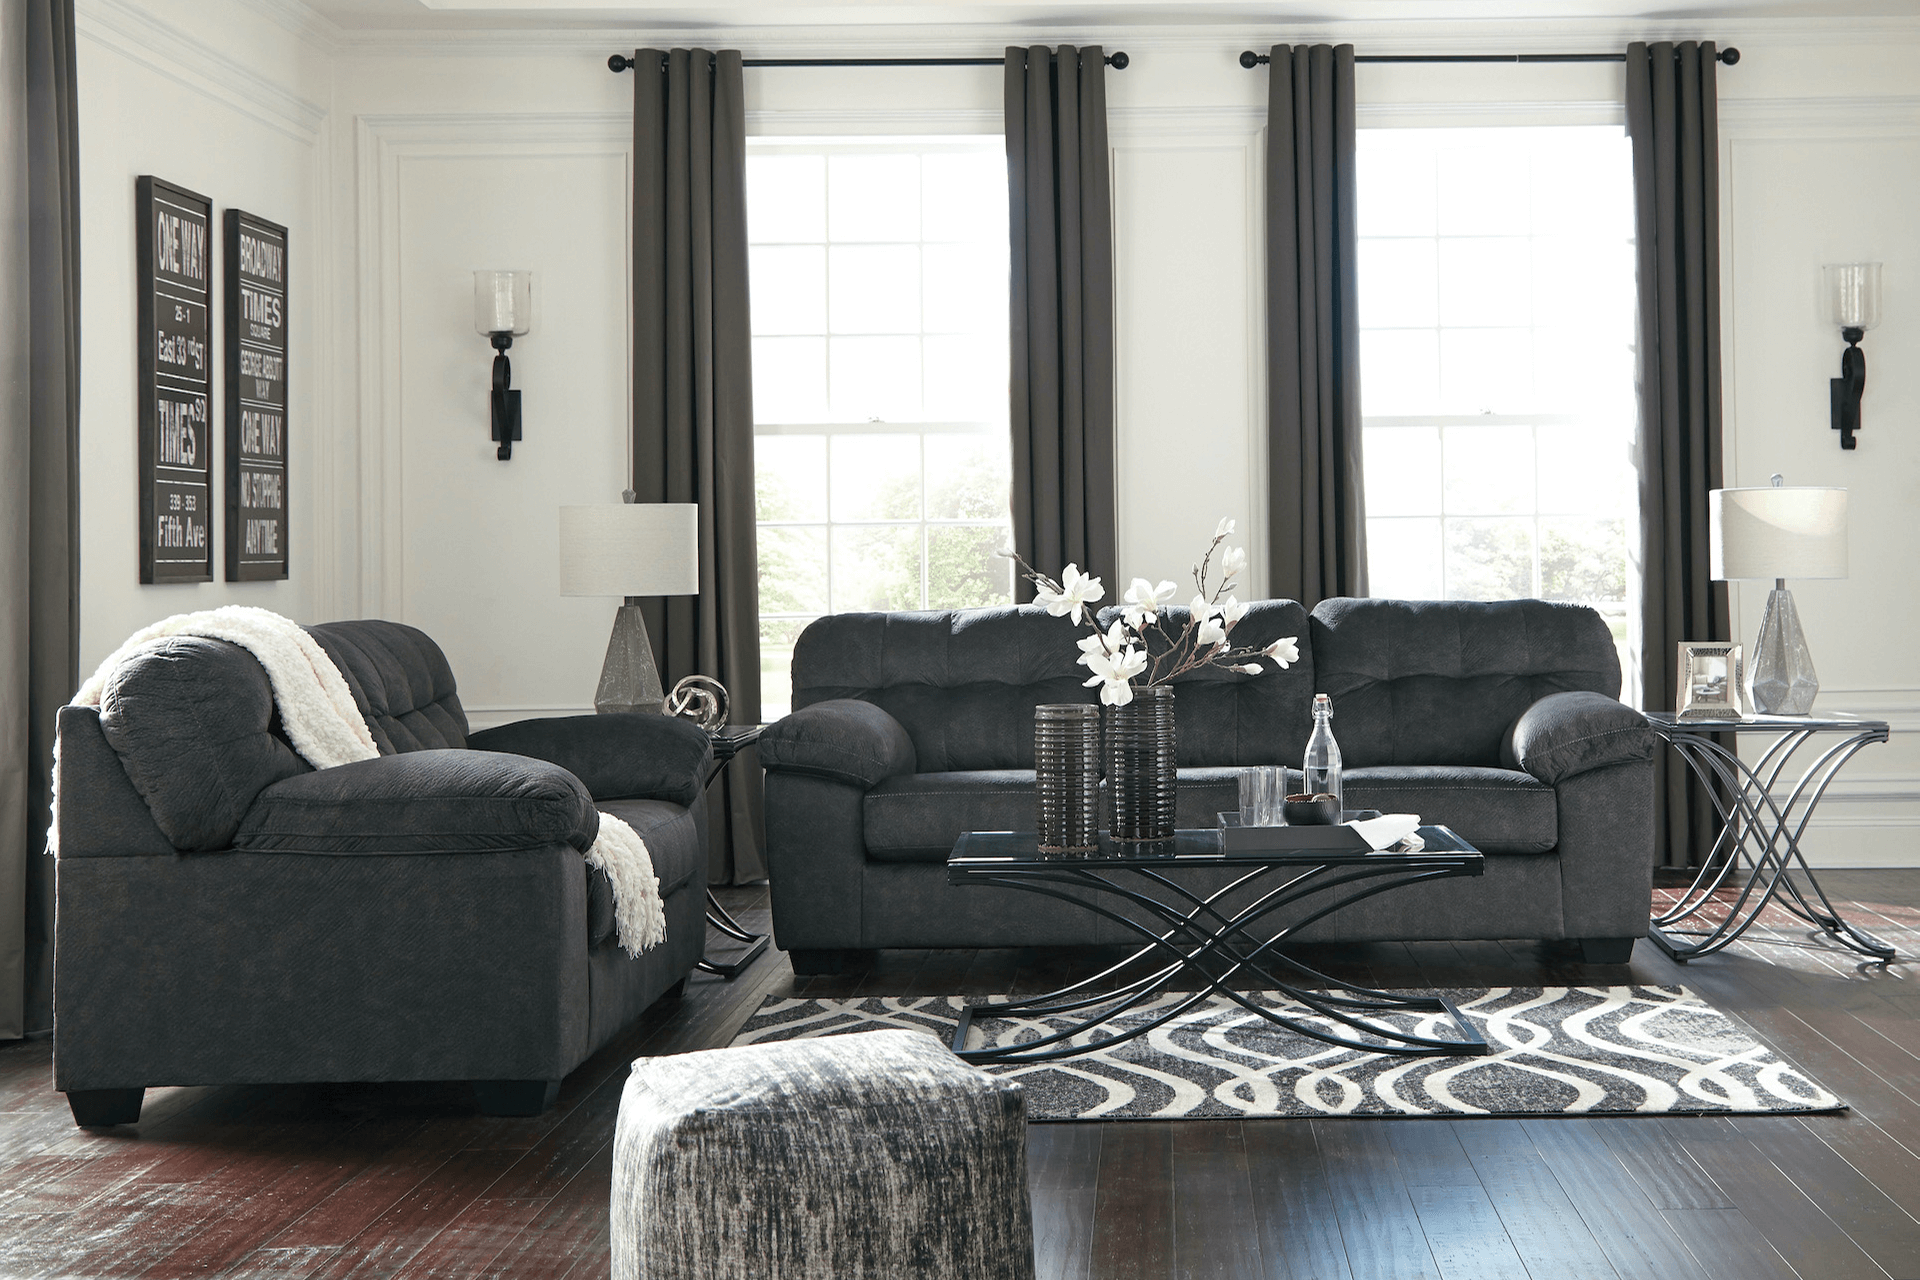 Atlantic_Furniture-Sofa_Sets-70509_T374_hi-res